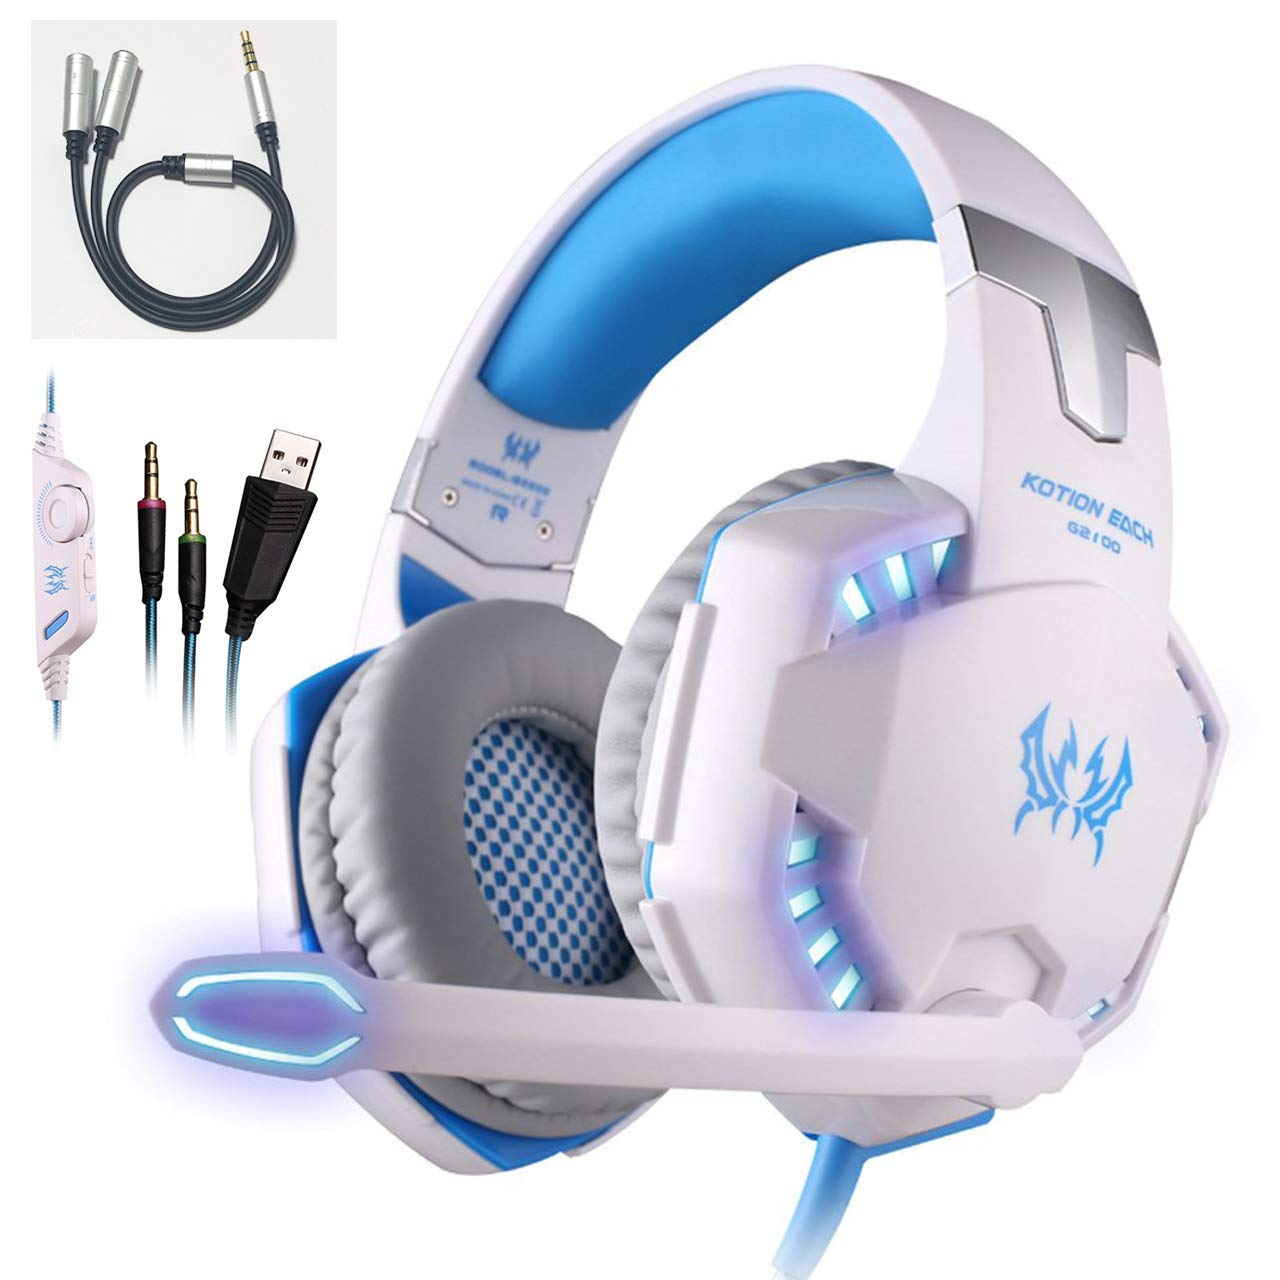 EACH G2100 Vibration Function Professional Gaming Headphone Games Headset with Mic Stereo Bass LED Light for PC Gamer by EACH